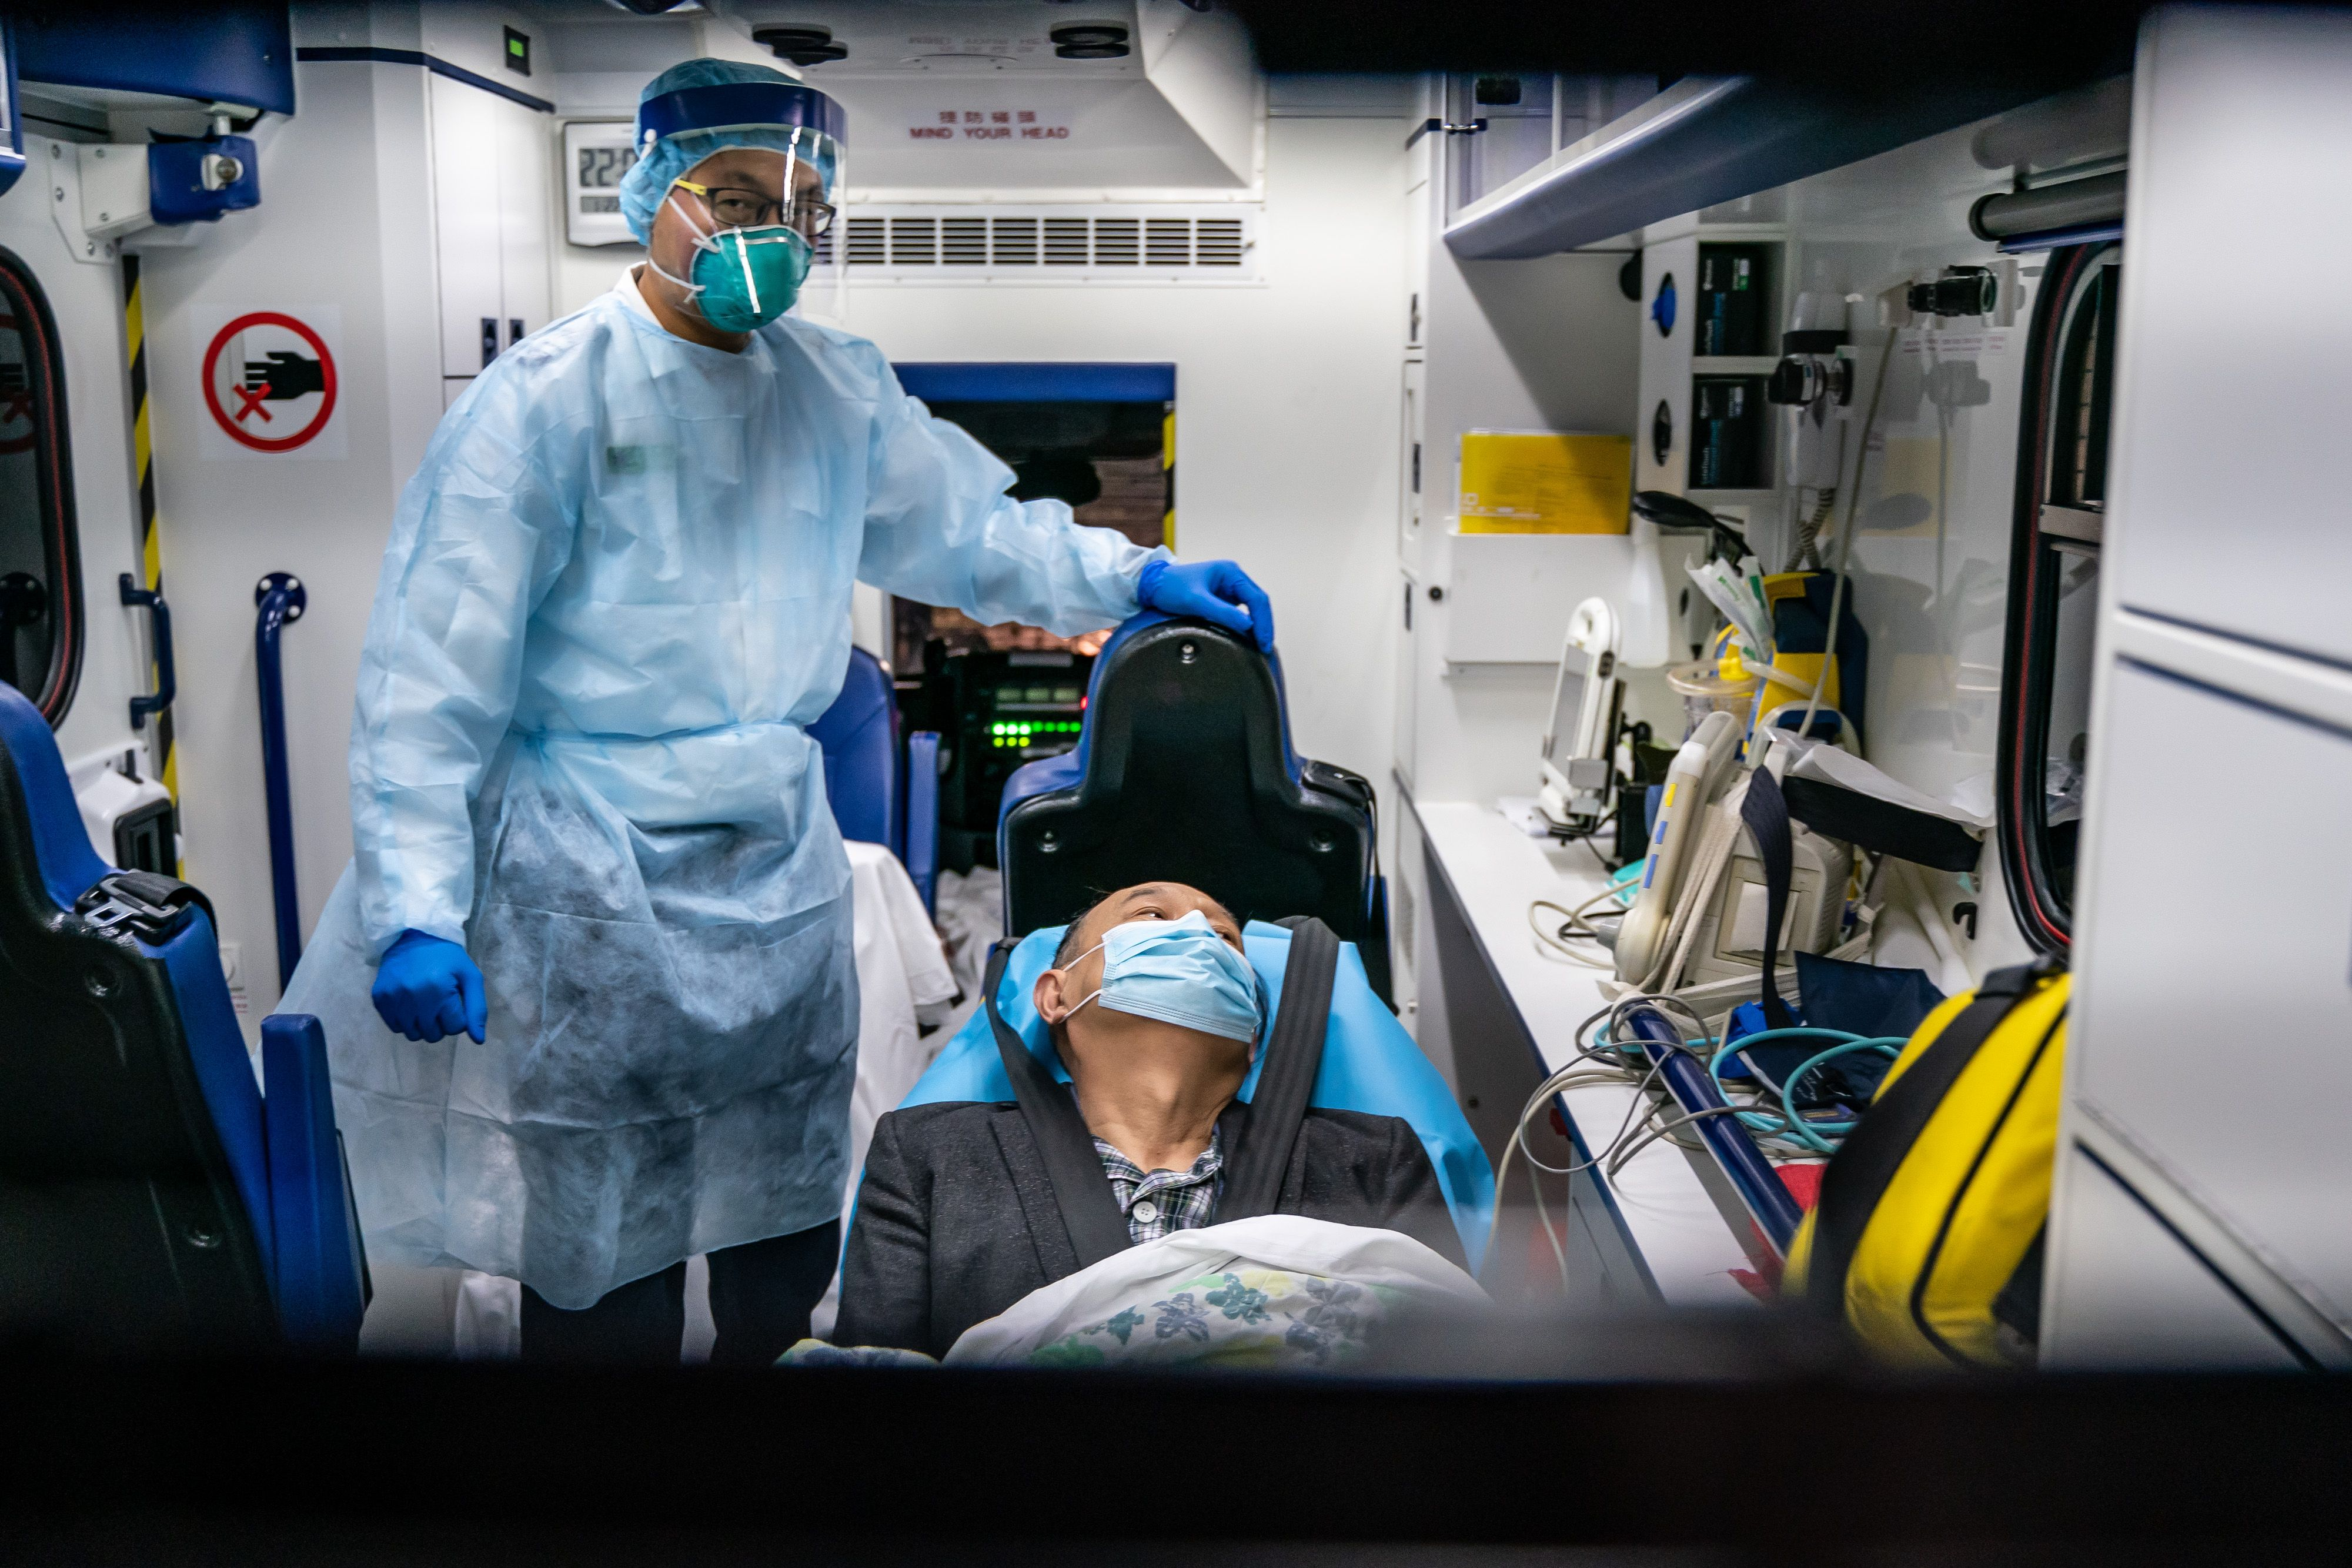 Patient being treated by man in HASMAT suit